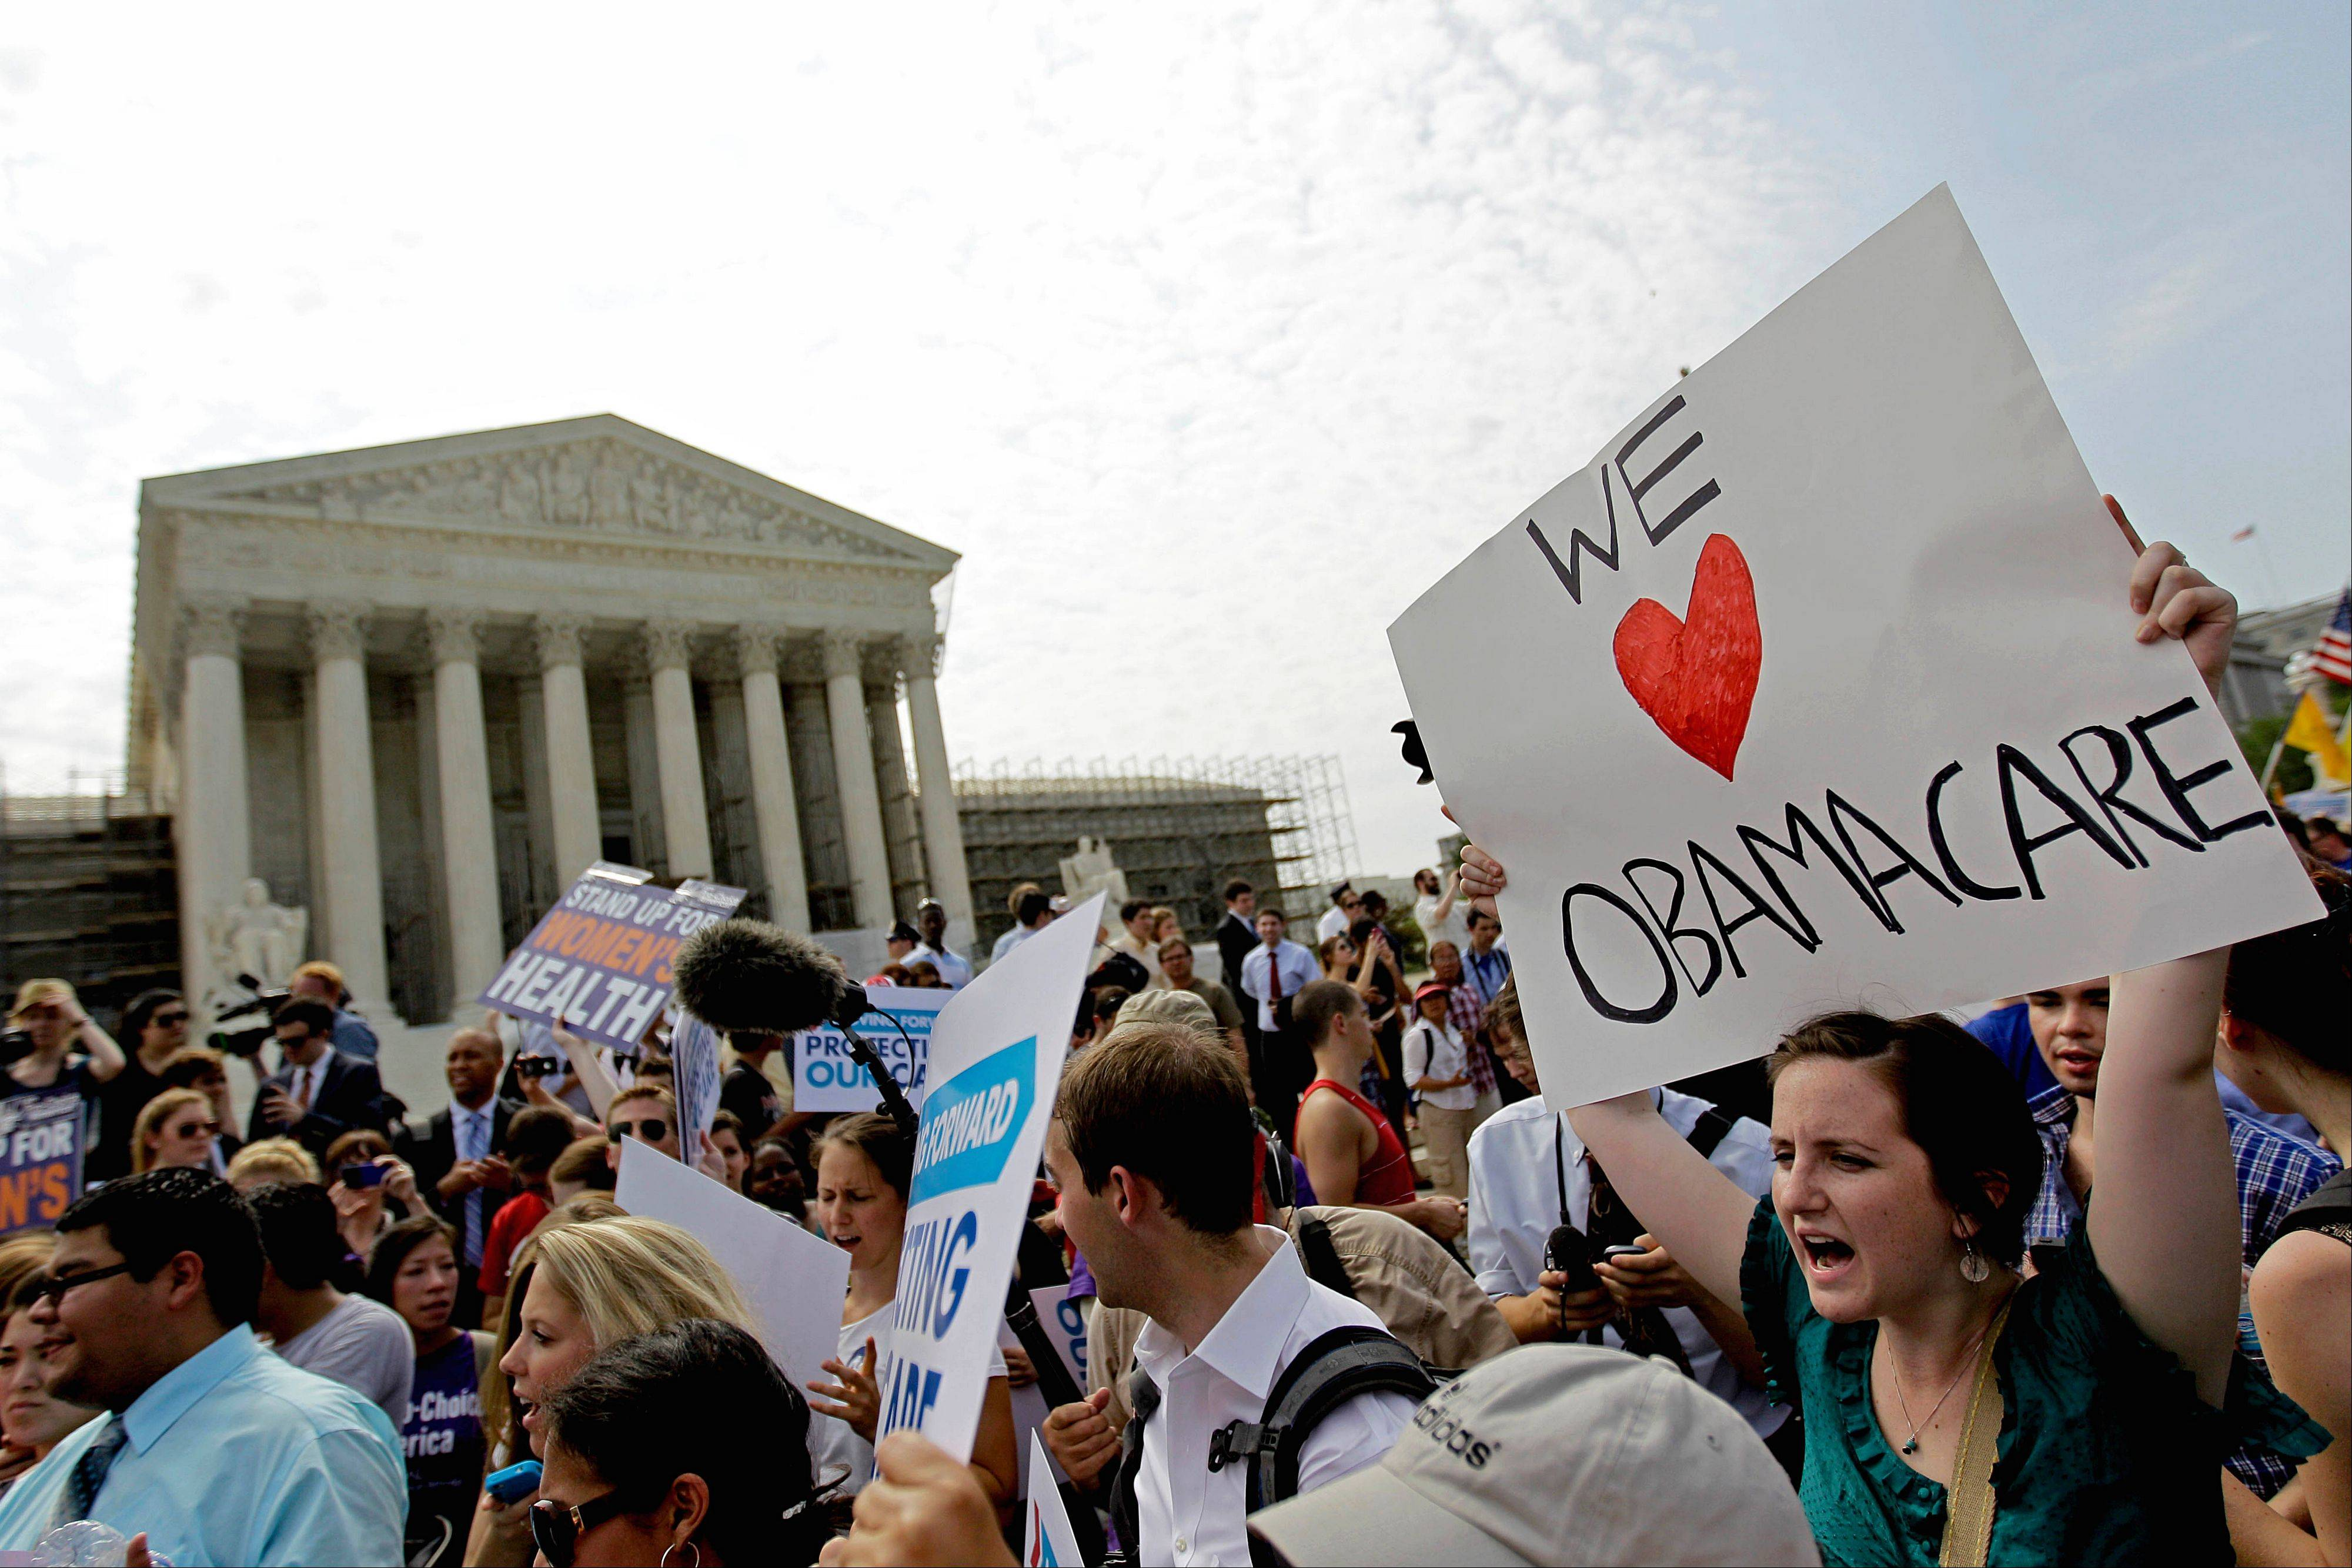 Supporters of President Barack Obama's health care law outside the Supreme Court in Washington after the court's ruling was announced. America�s health care system is unsustainable. It�s not one problem, but three combined: high cost, uneven quality and millions uninsured. Major changes will keep coming. Every family will be affected.